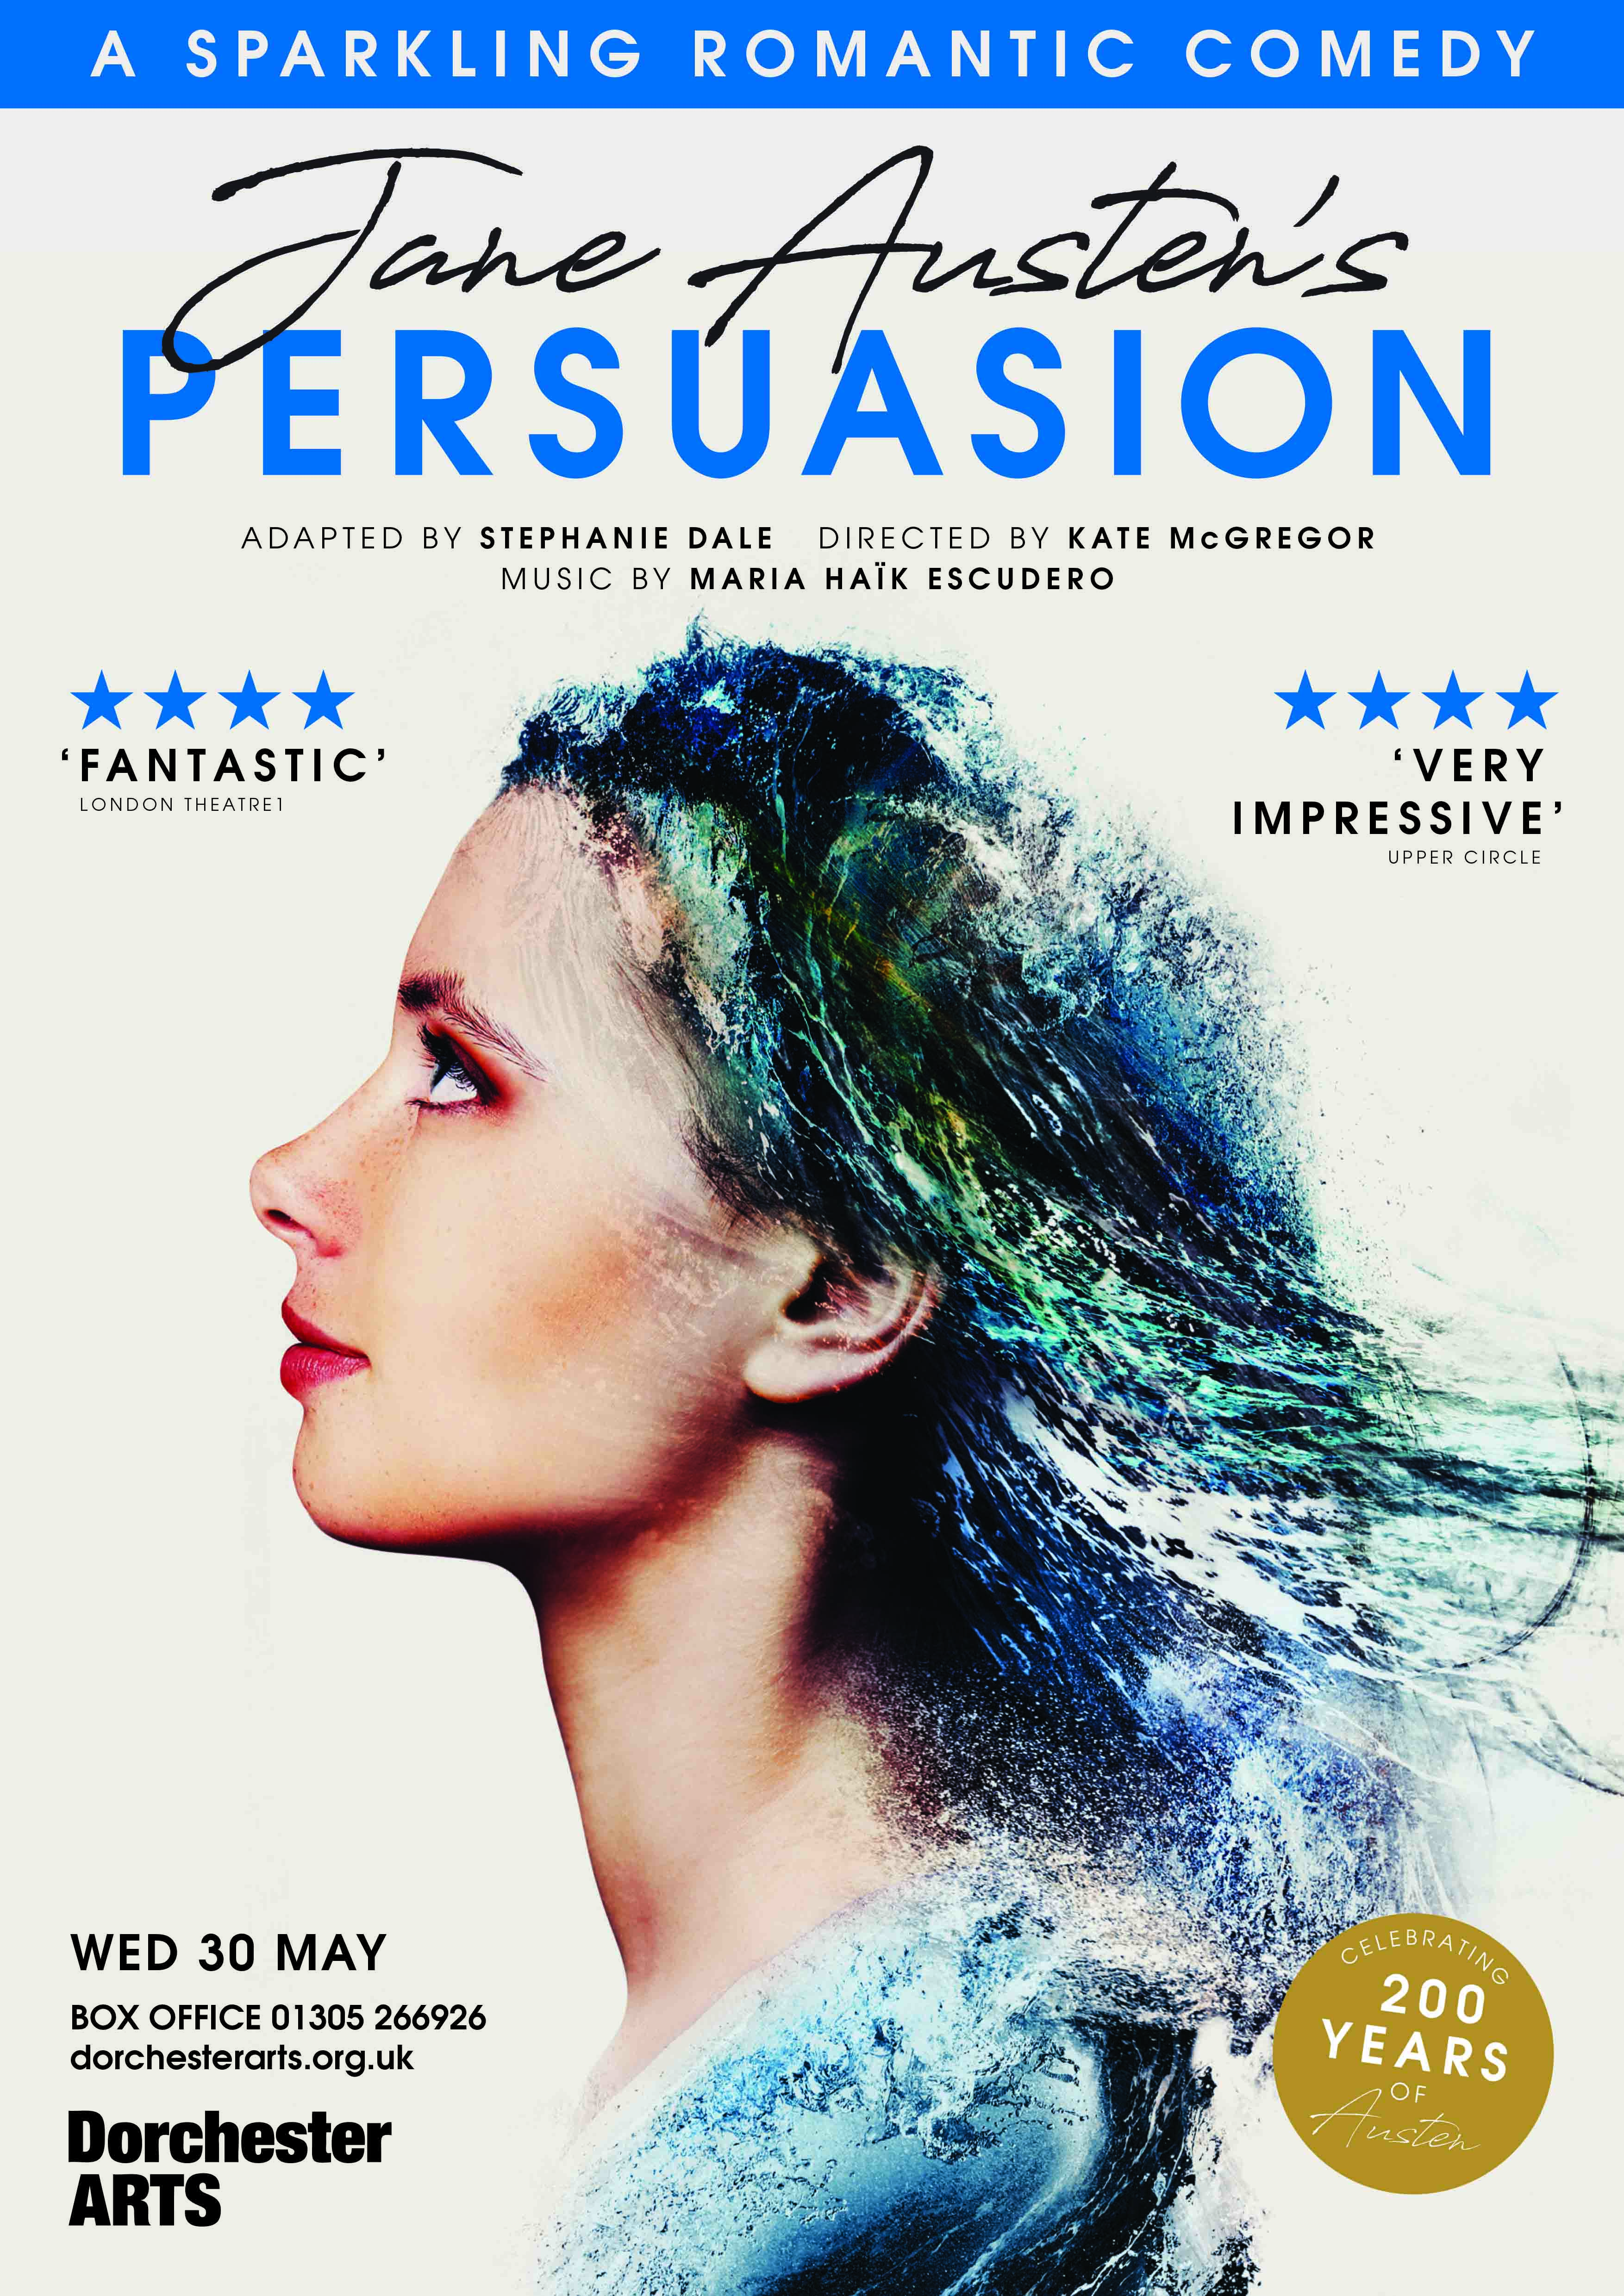 Persuasion Poster Show Image